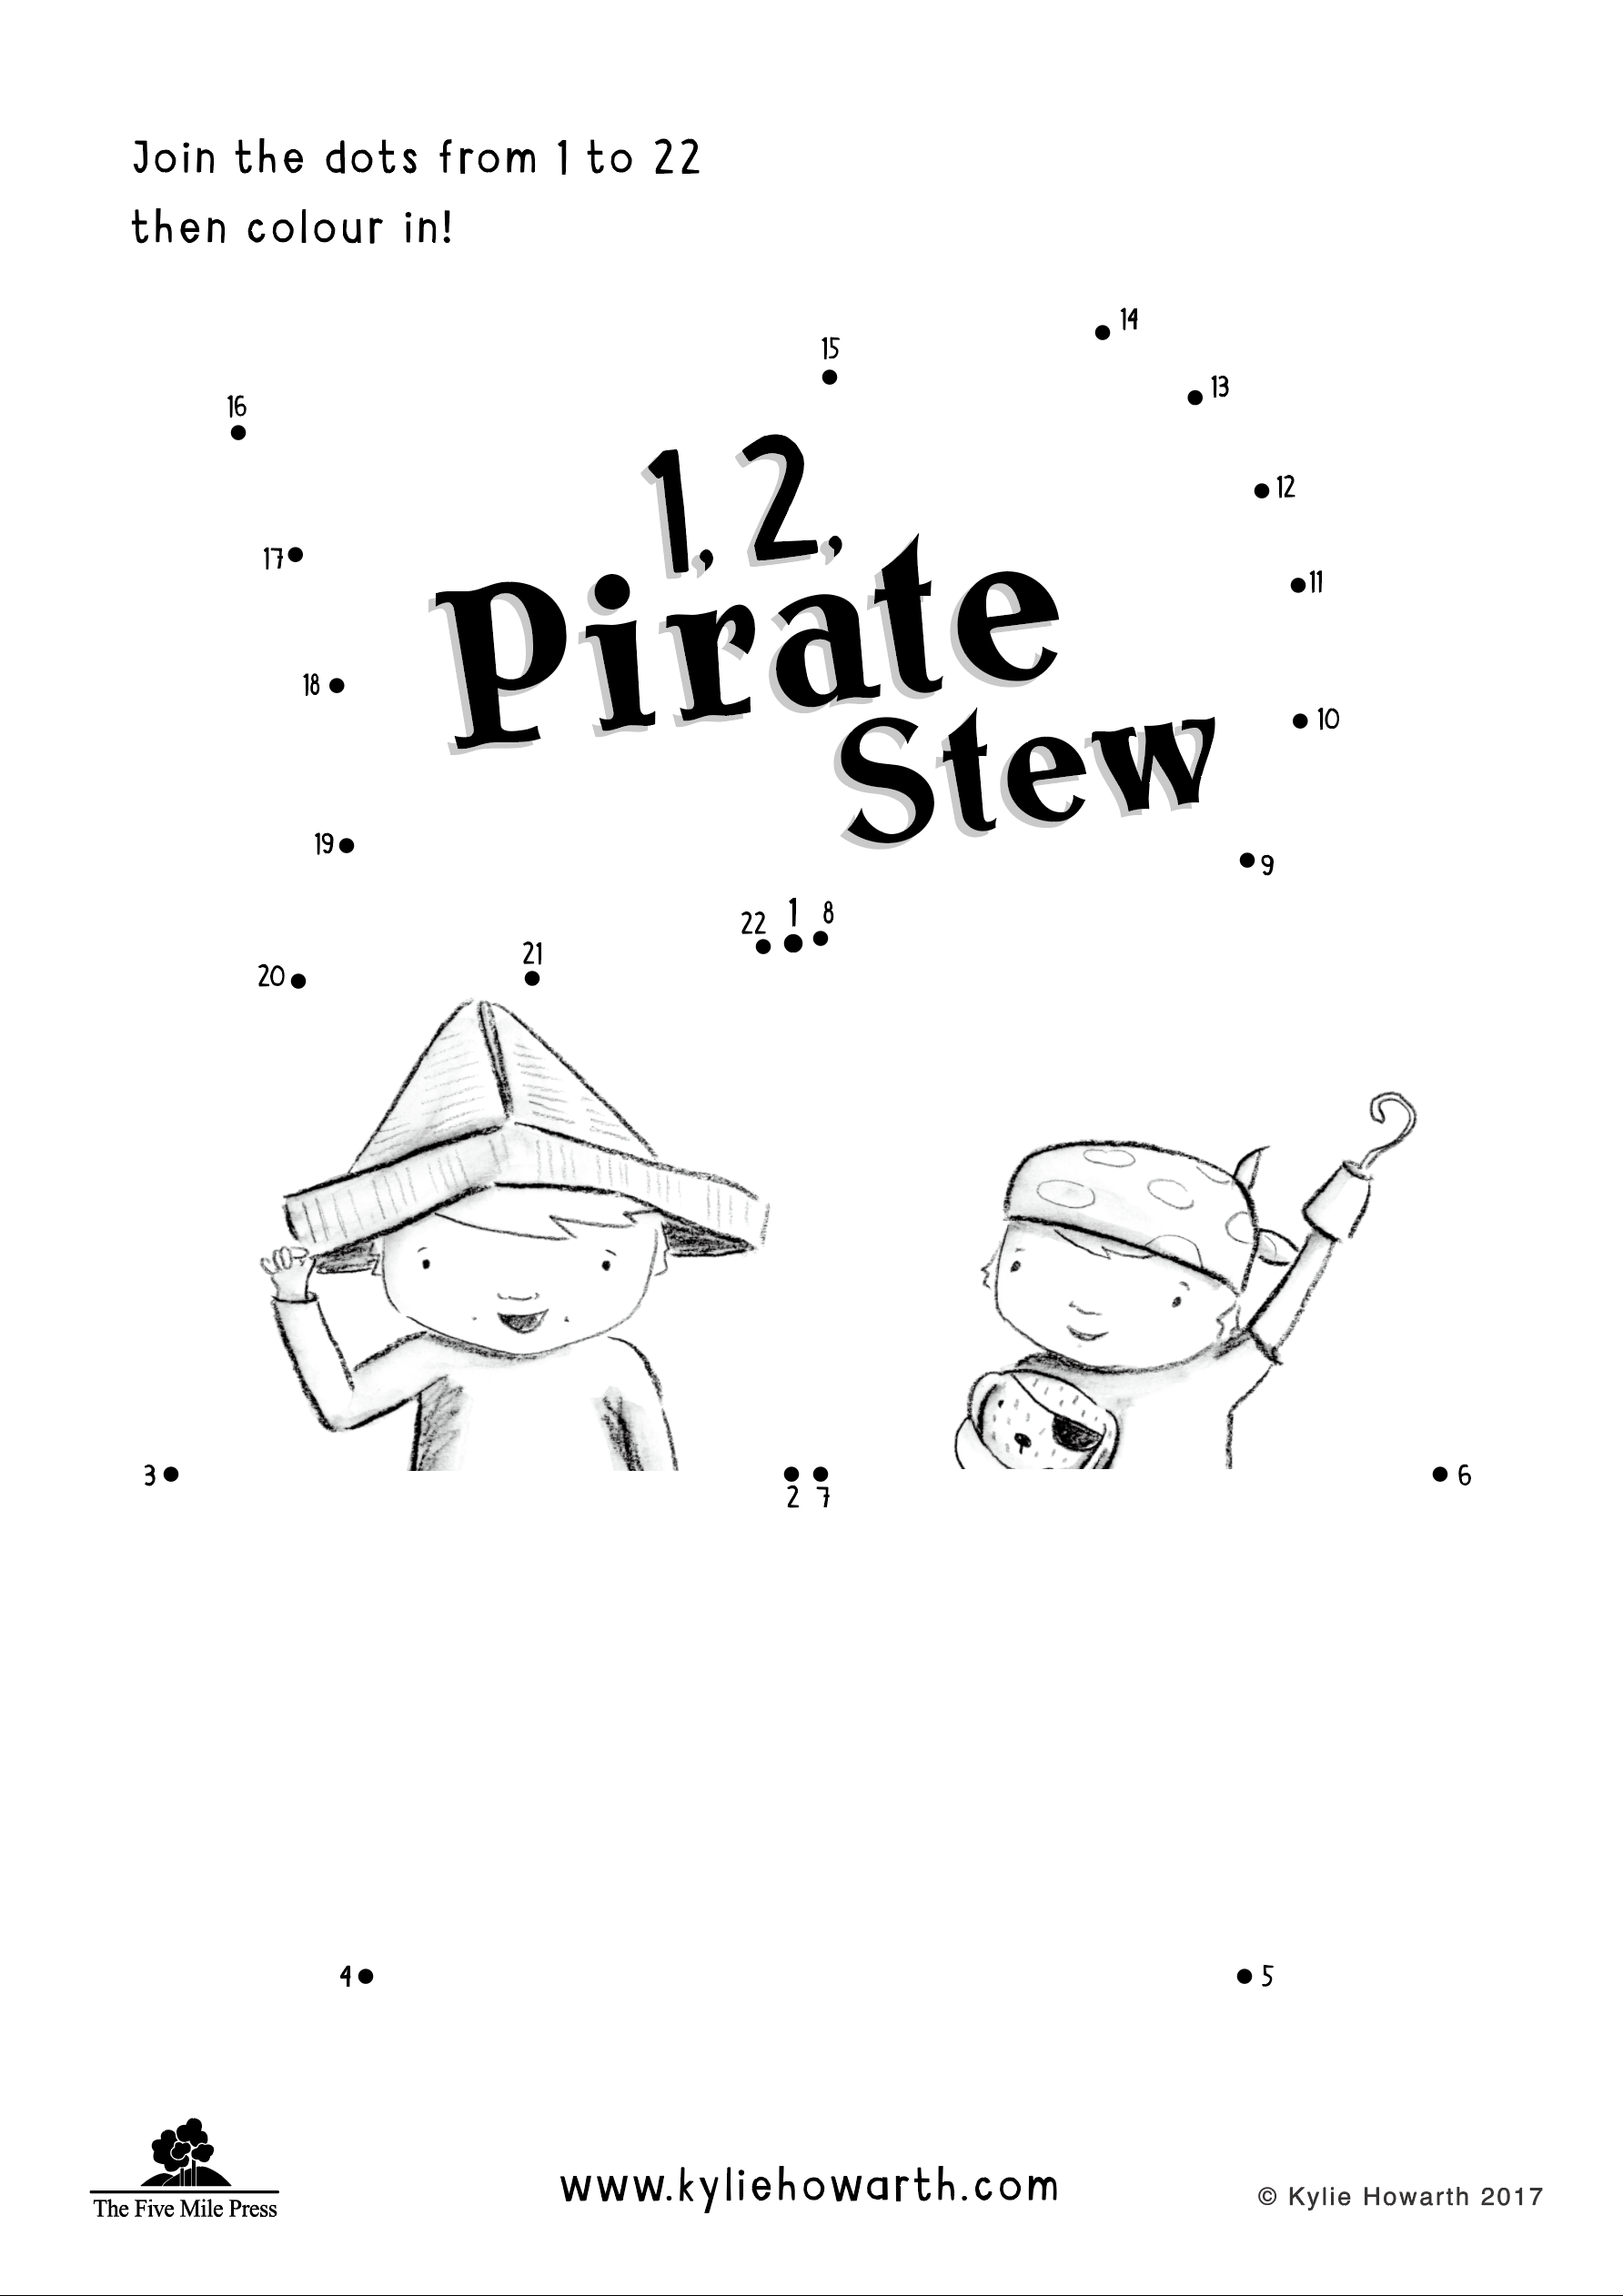 1, 2, Pirate Stew dot-to-dot Kylie Howarth